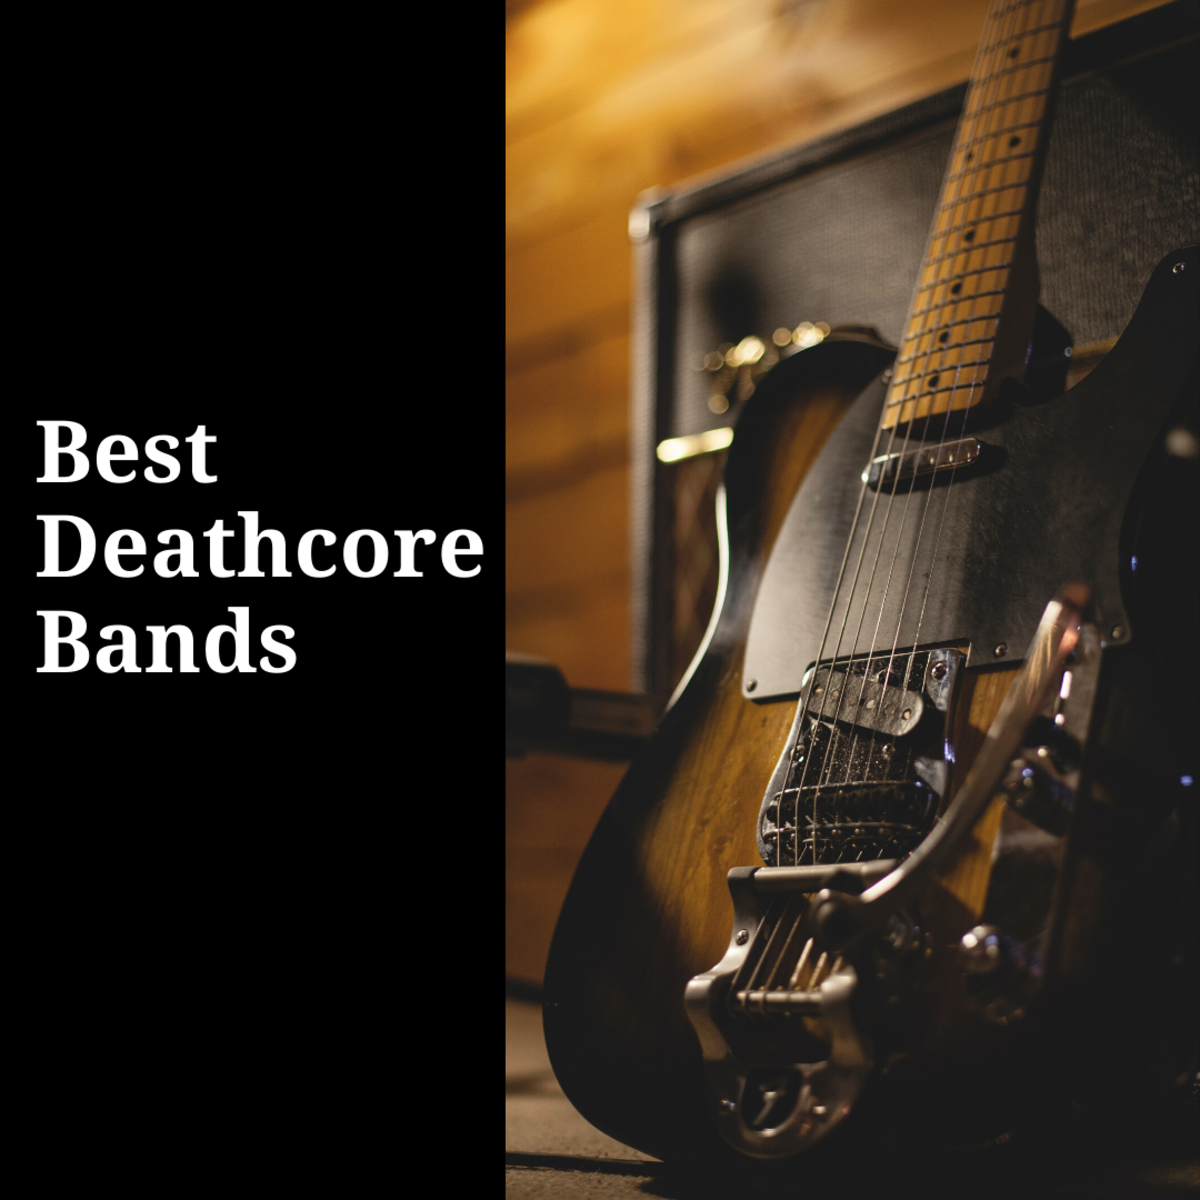 These great deathcore bands have had a major influence on the development of the genre.